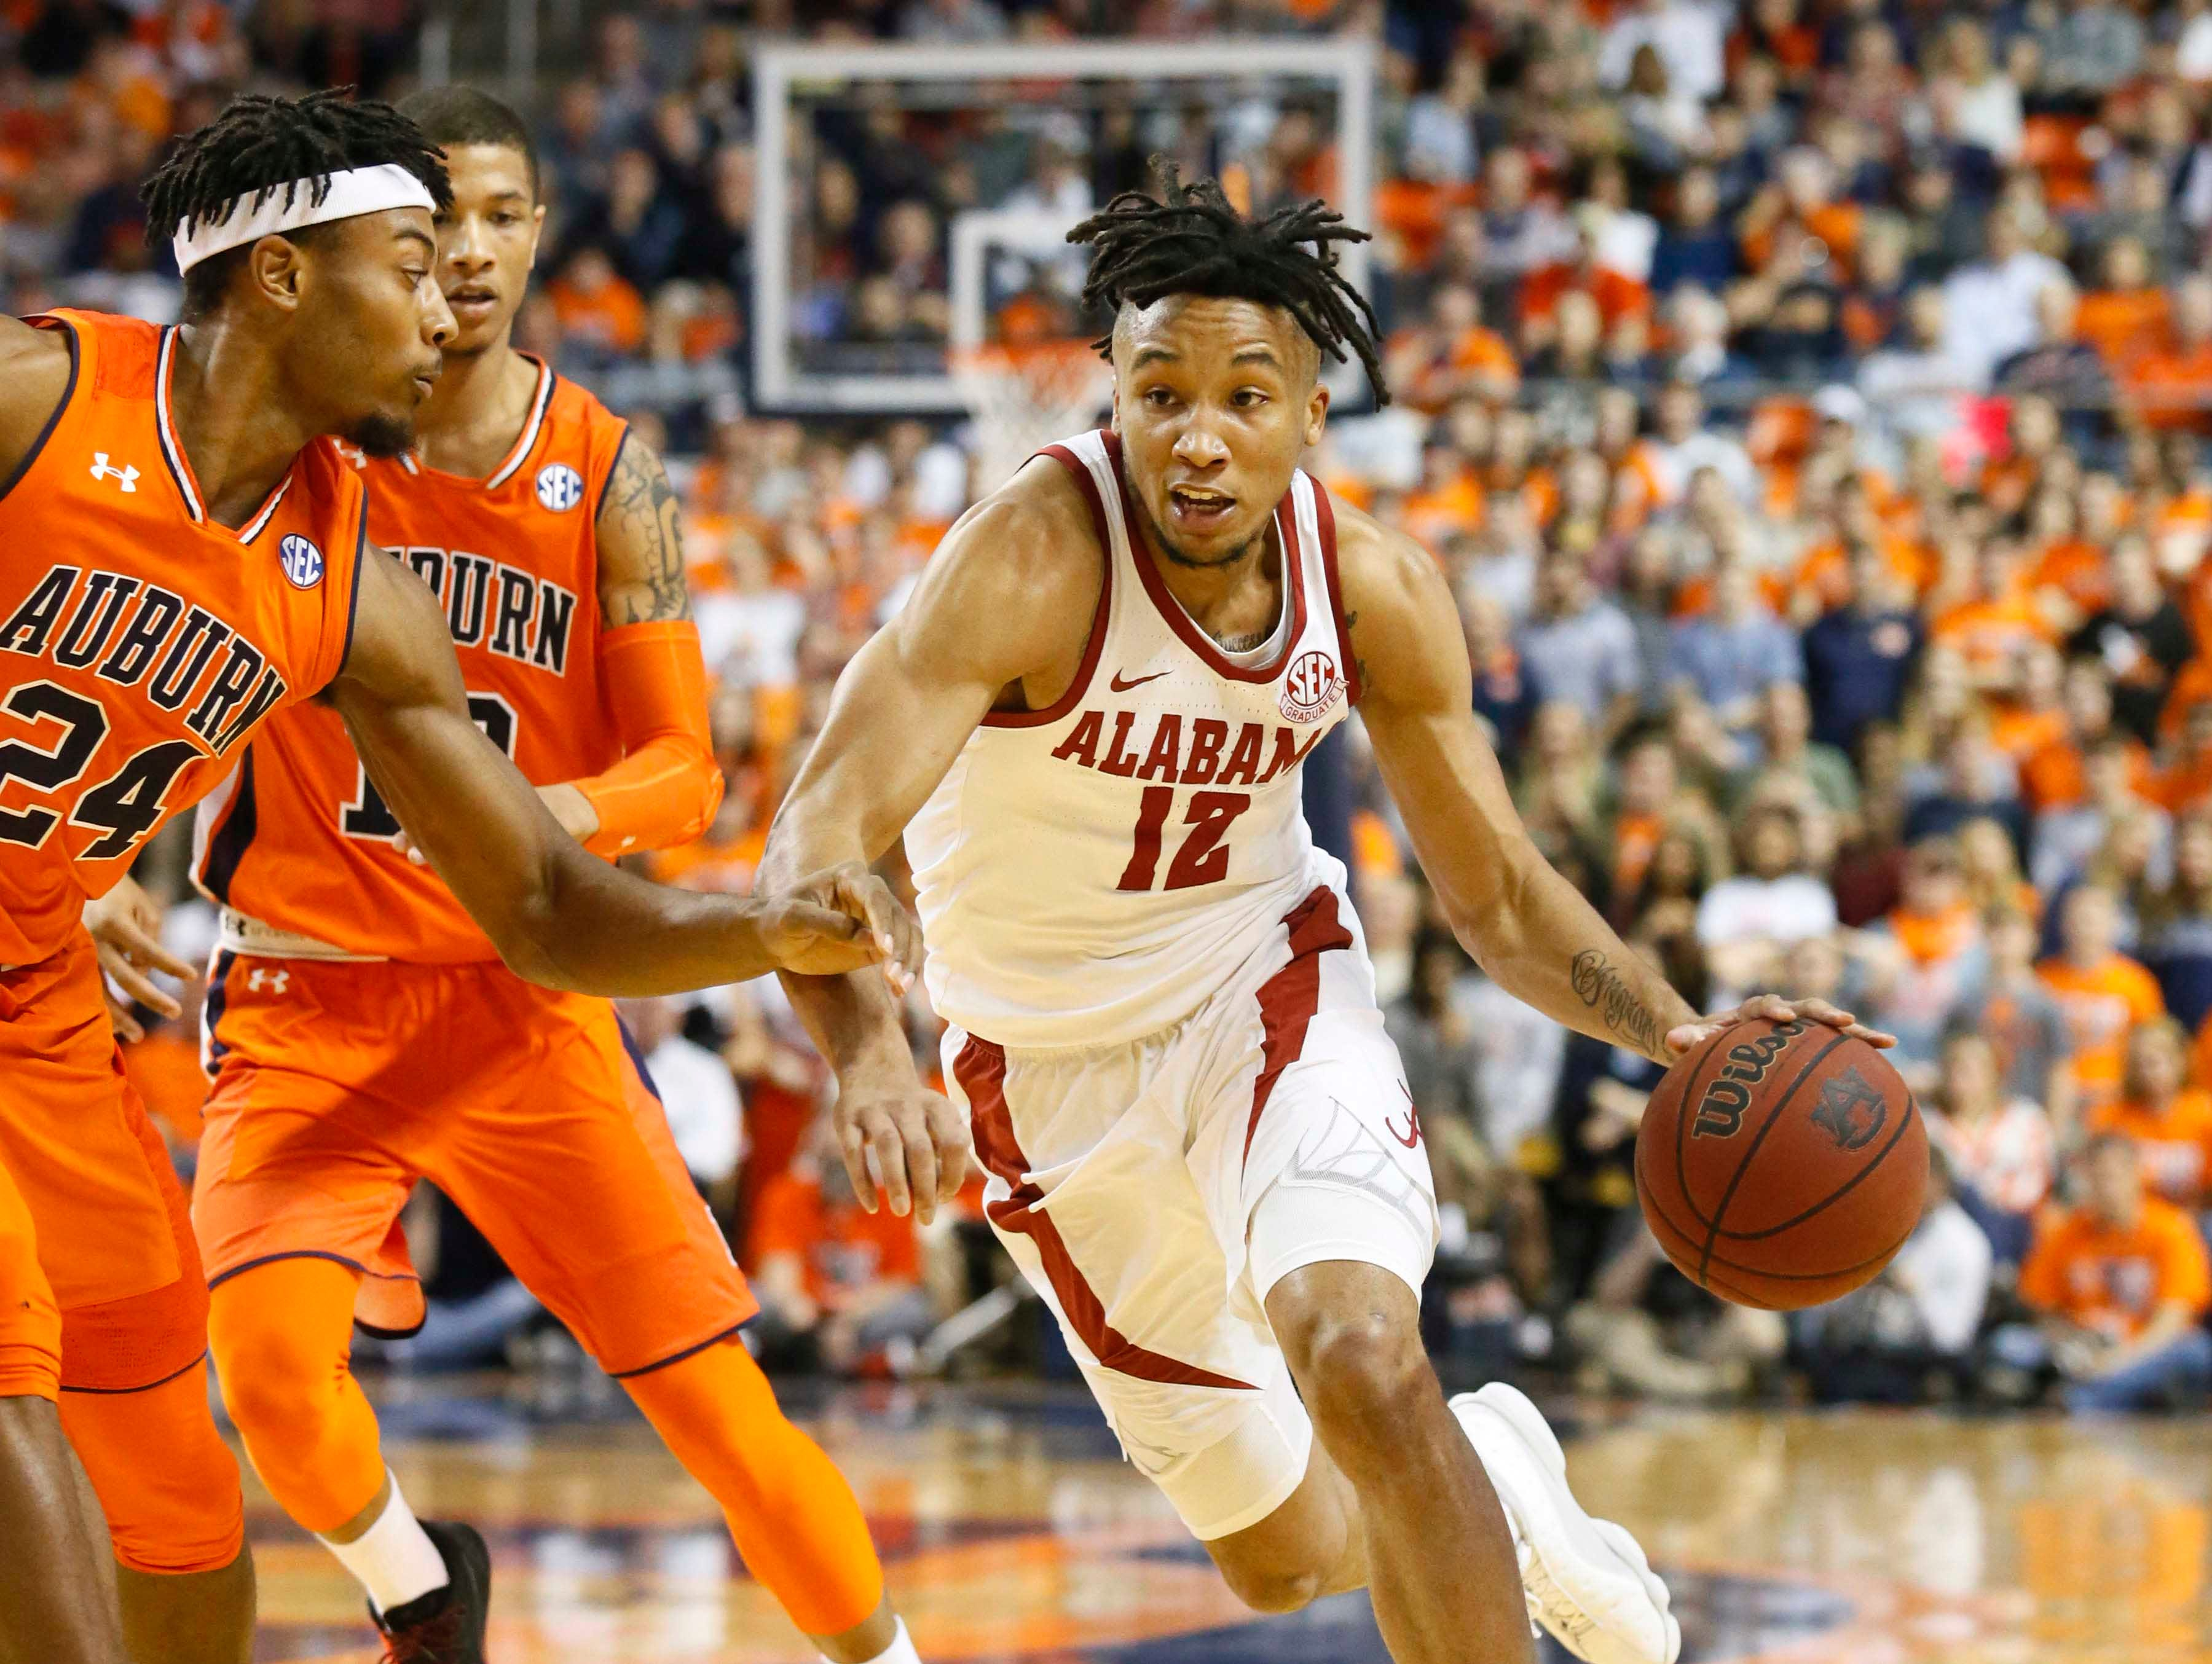 Feb 2, 2019; Auburn, AL, USA; Alabama Crimson Tide guard Dazo Ingram (12) drives against Auburn Tigers forward Anfernee McLemore (24) during the first half at Auburn Arena. Mandatory Credit: John Reed-USA TODAY Sports